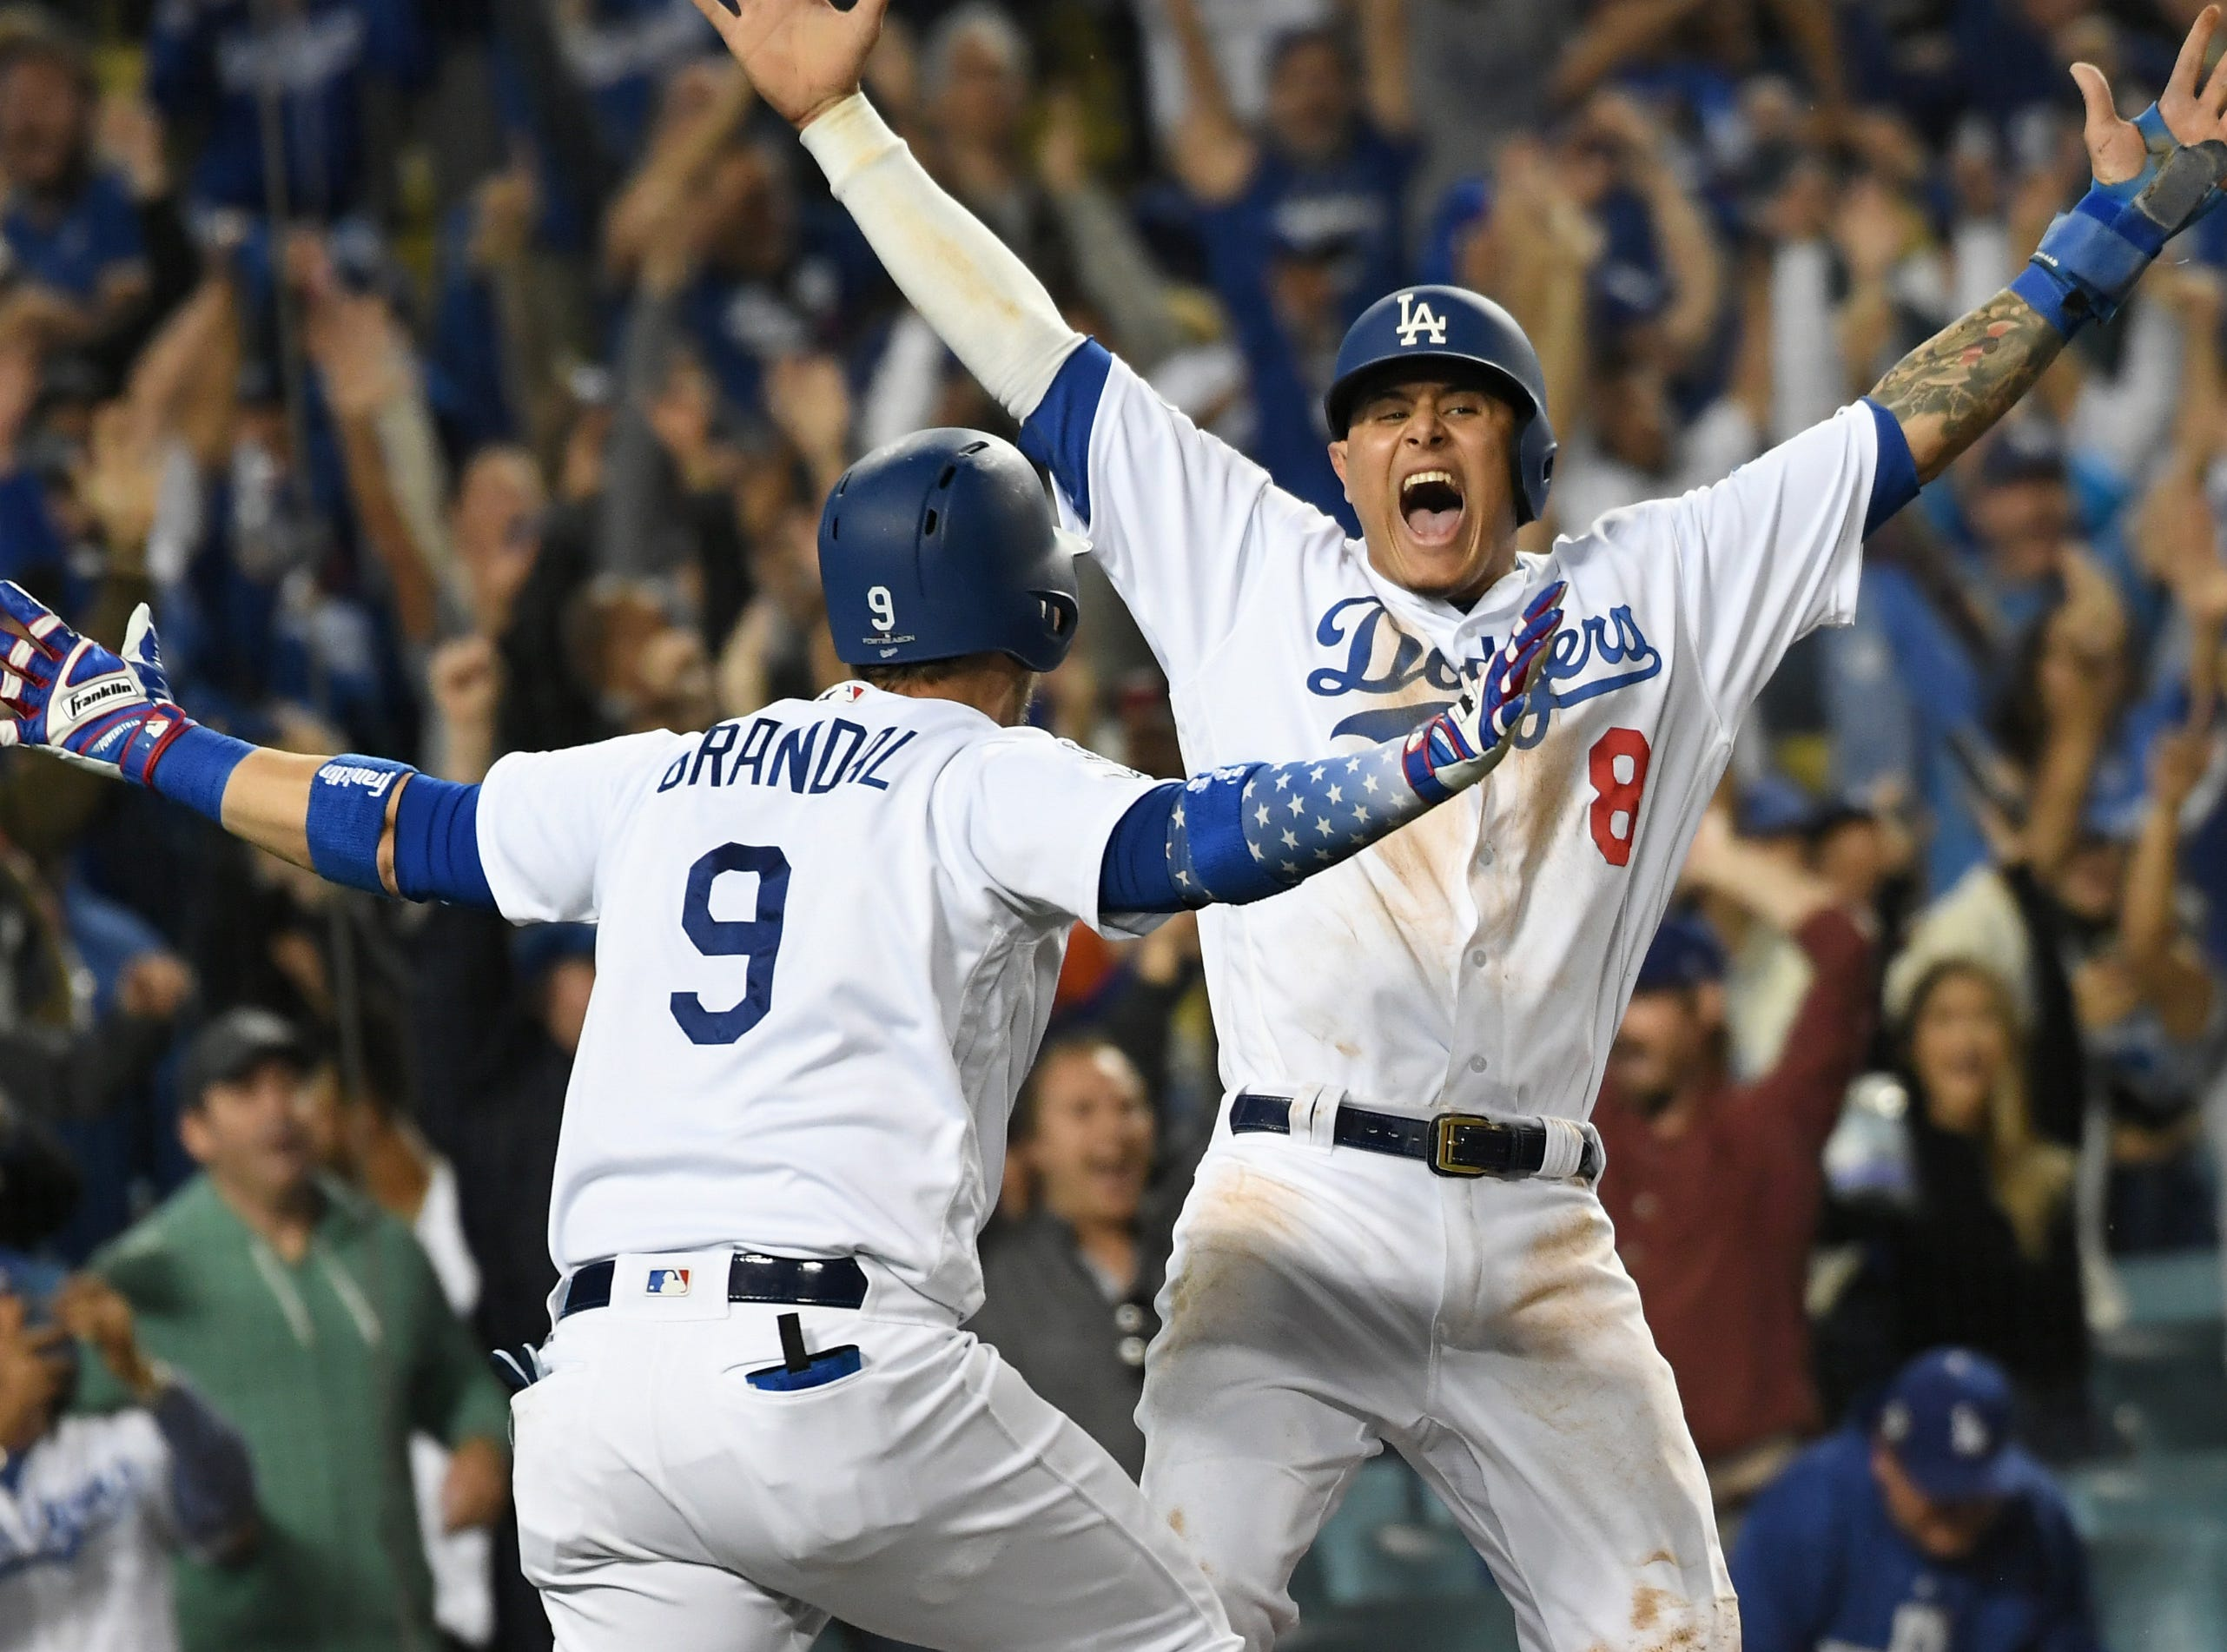 Oct. 16: Los Angeles Dodgers shortstop Manny Machado (8) celebrates with catcher Yasmani Grandal after scoring on an RBI single by center fielder Cody Bellinger in the 13th inning in Game 4 of the NLCS.